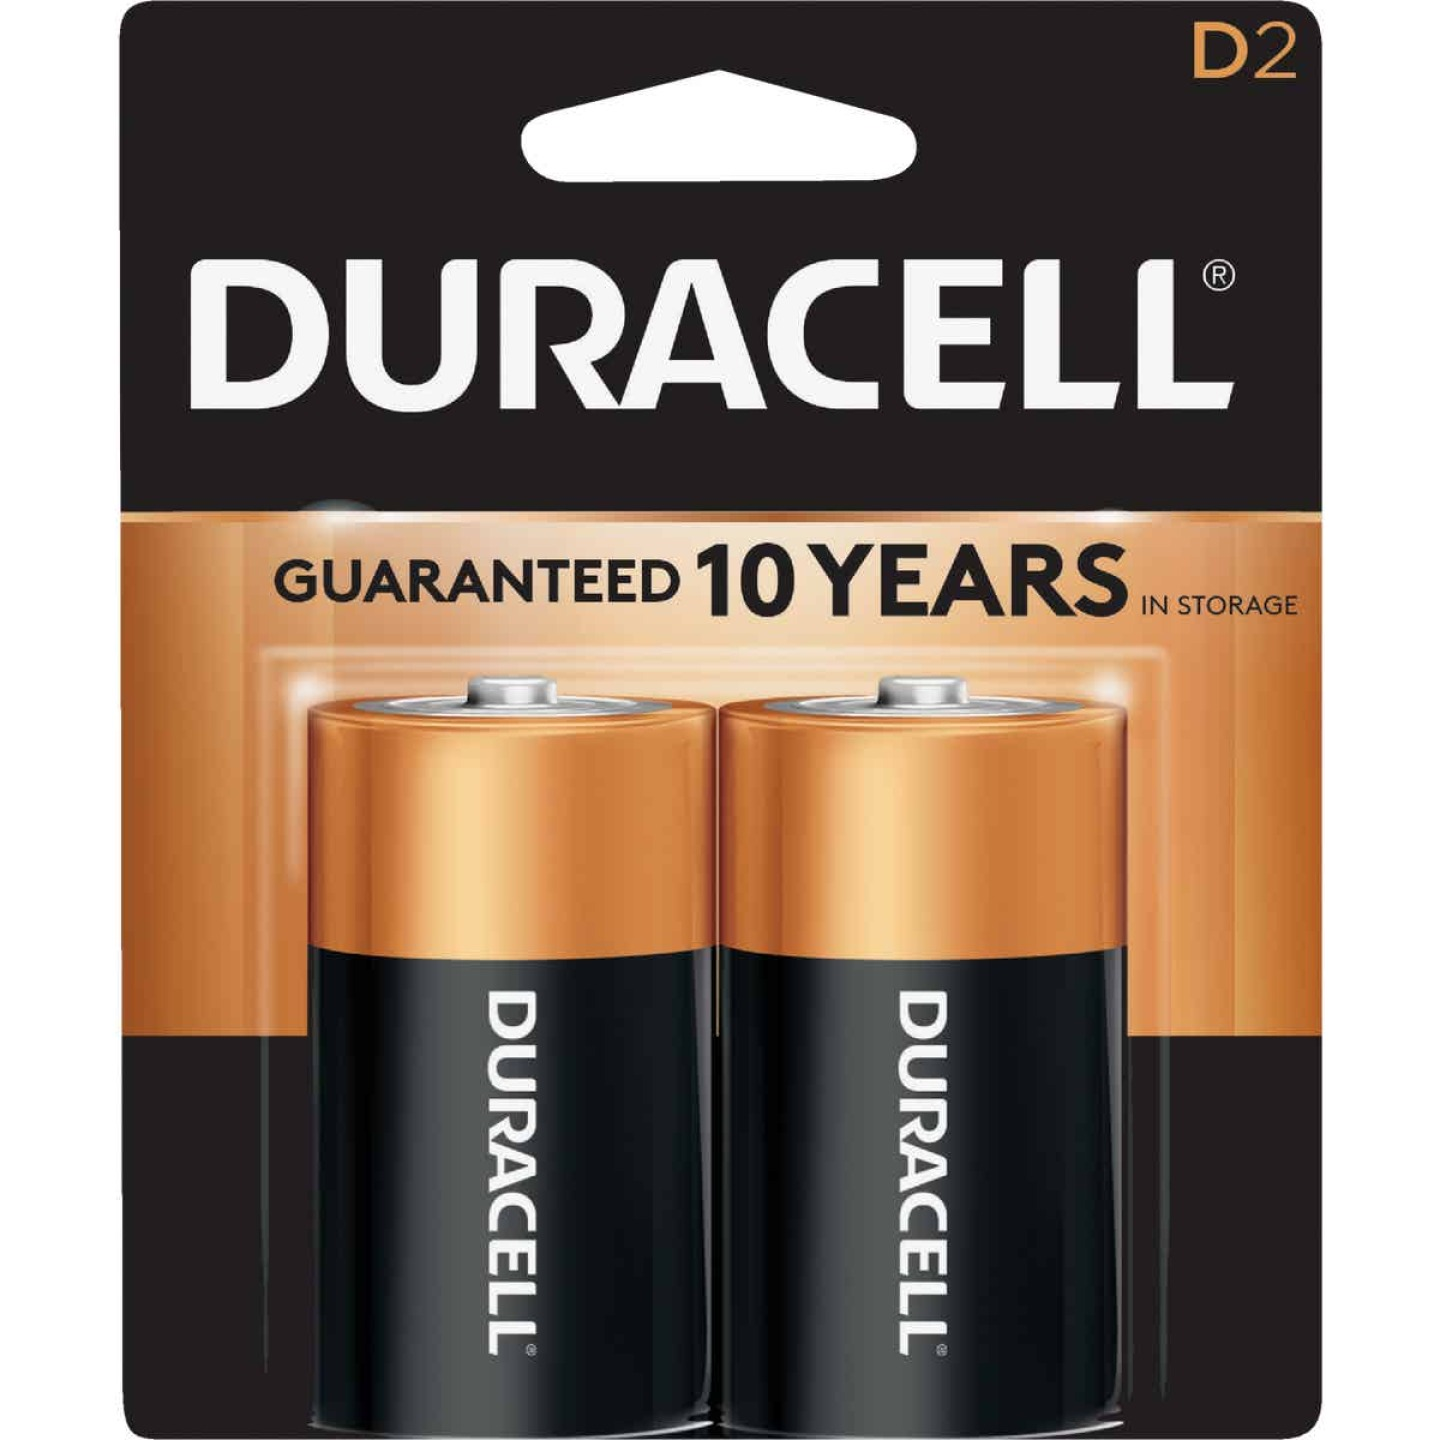 Duracell CopperTop D Alkaline Battery (2-Pack) Image 1